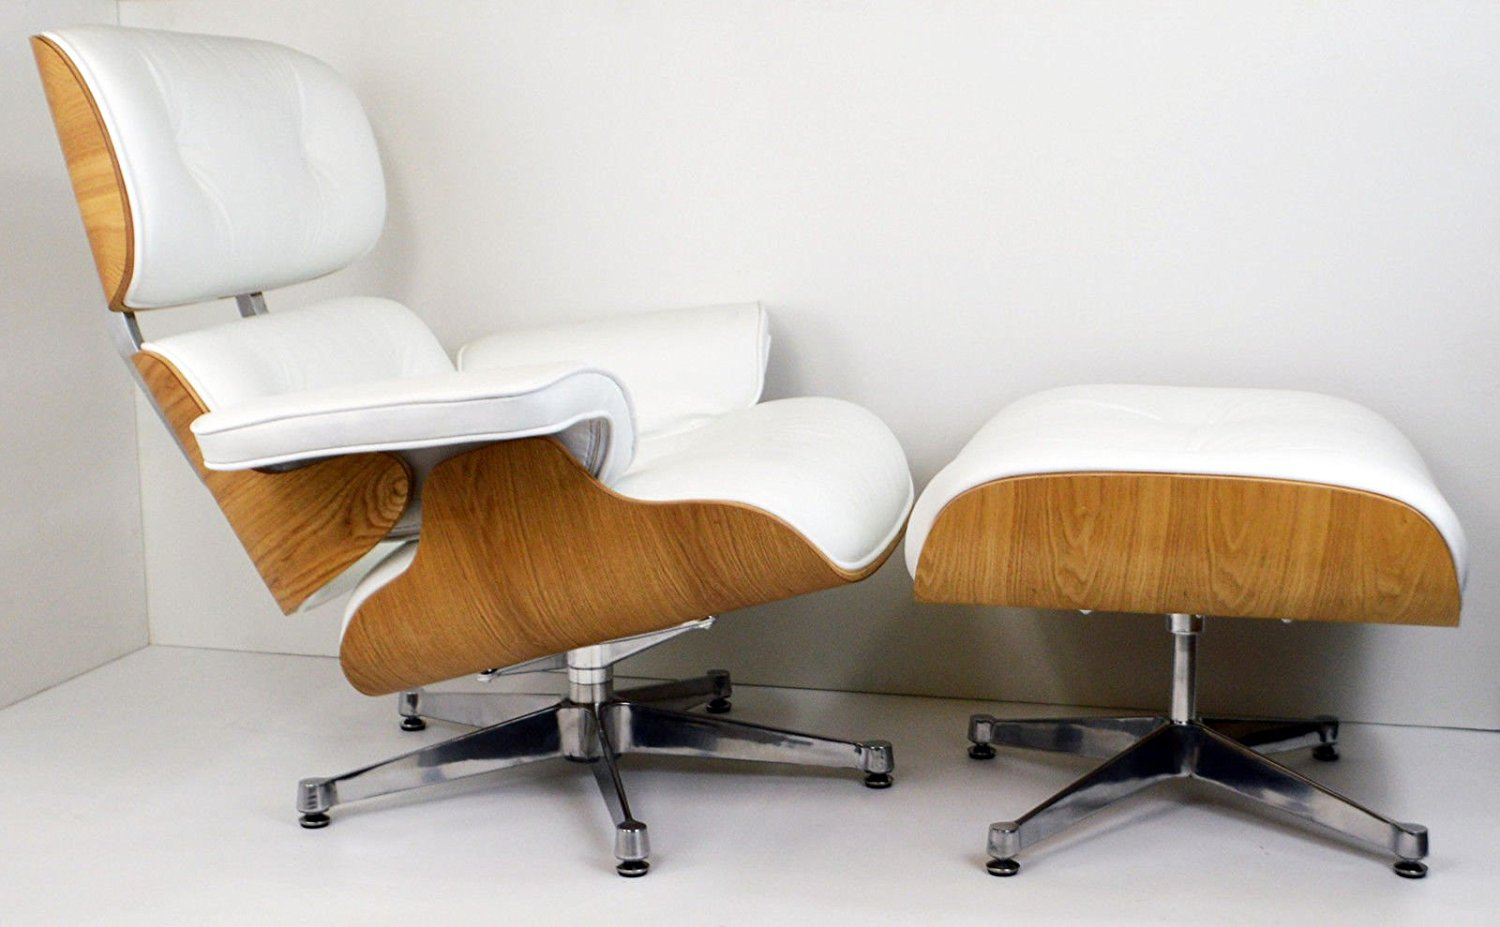 Eames lounge chair reproduction uk for Eames chair replica uk